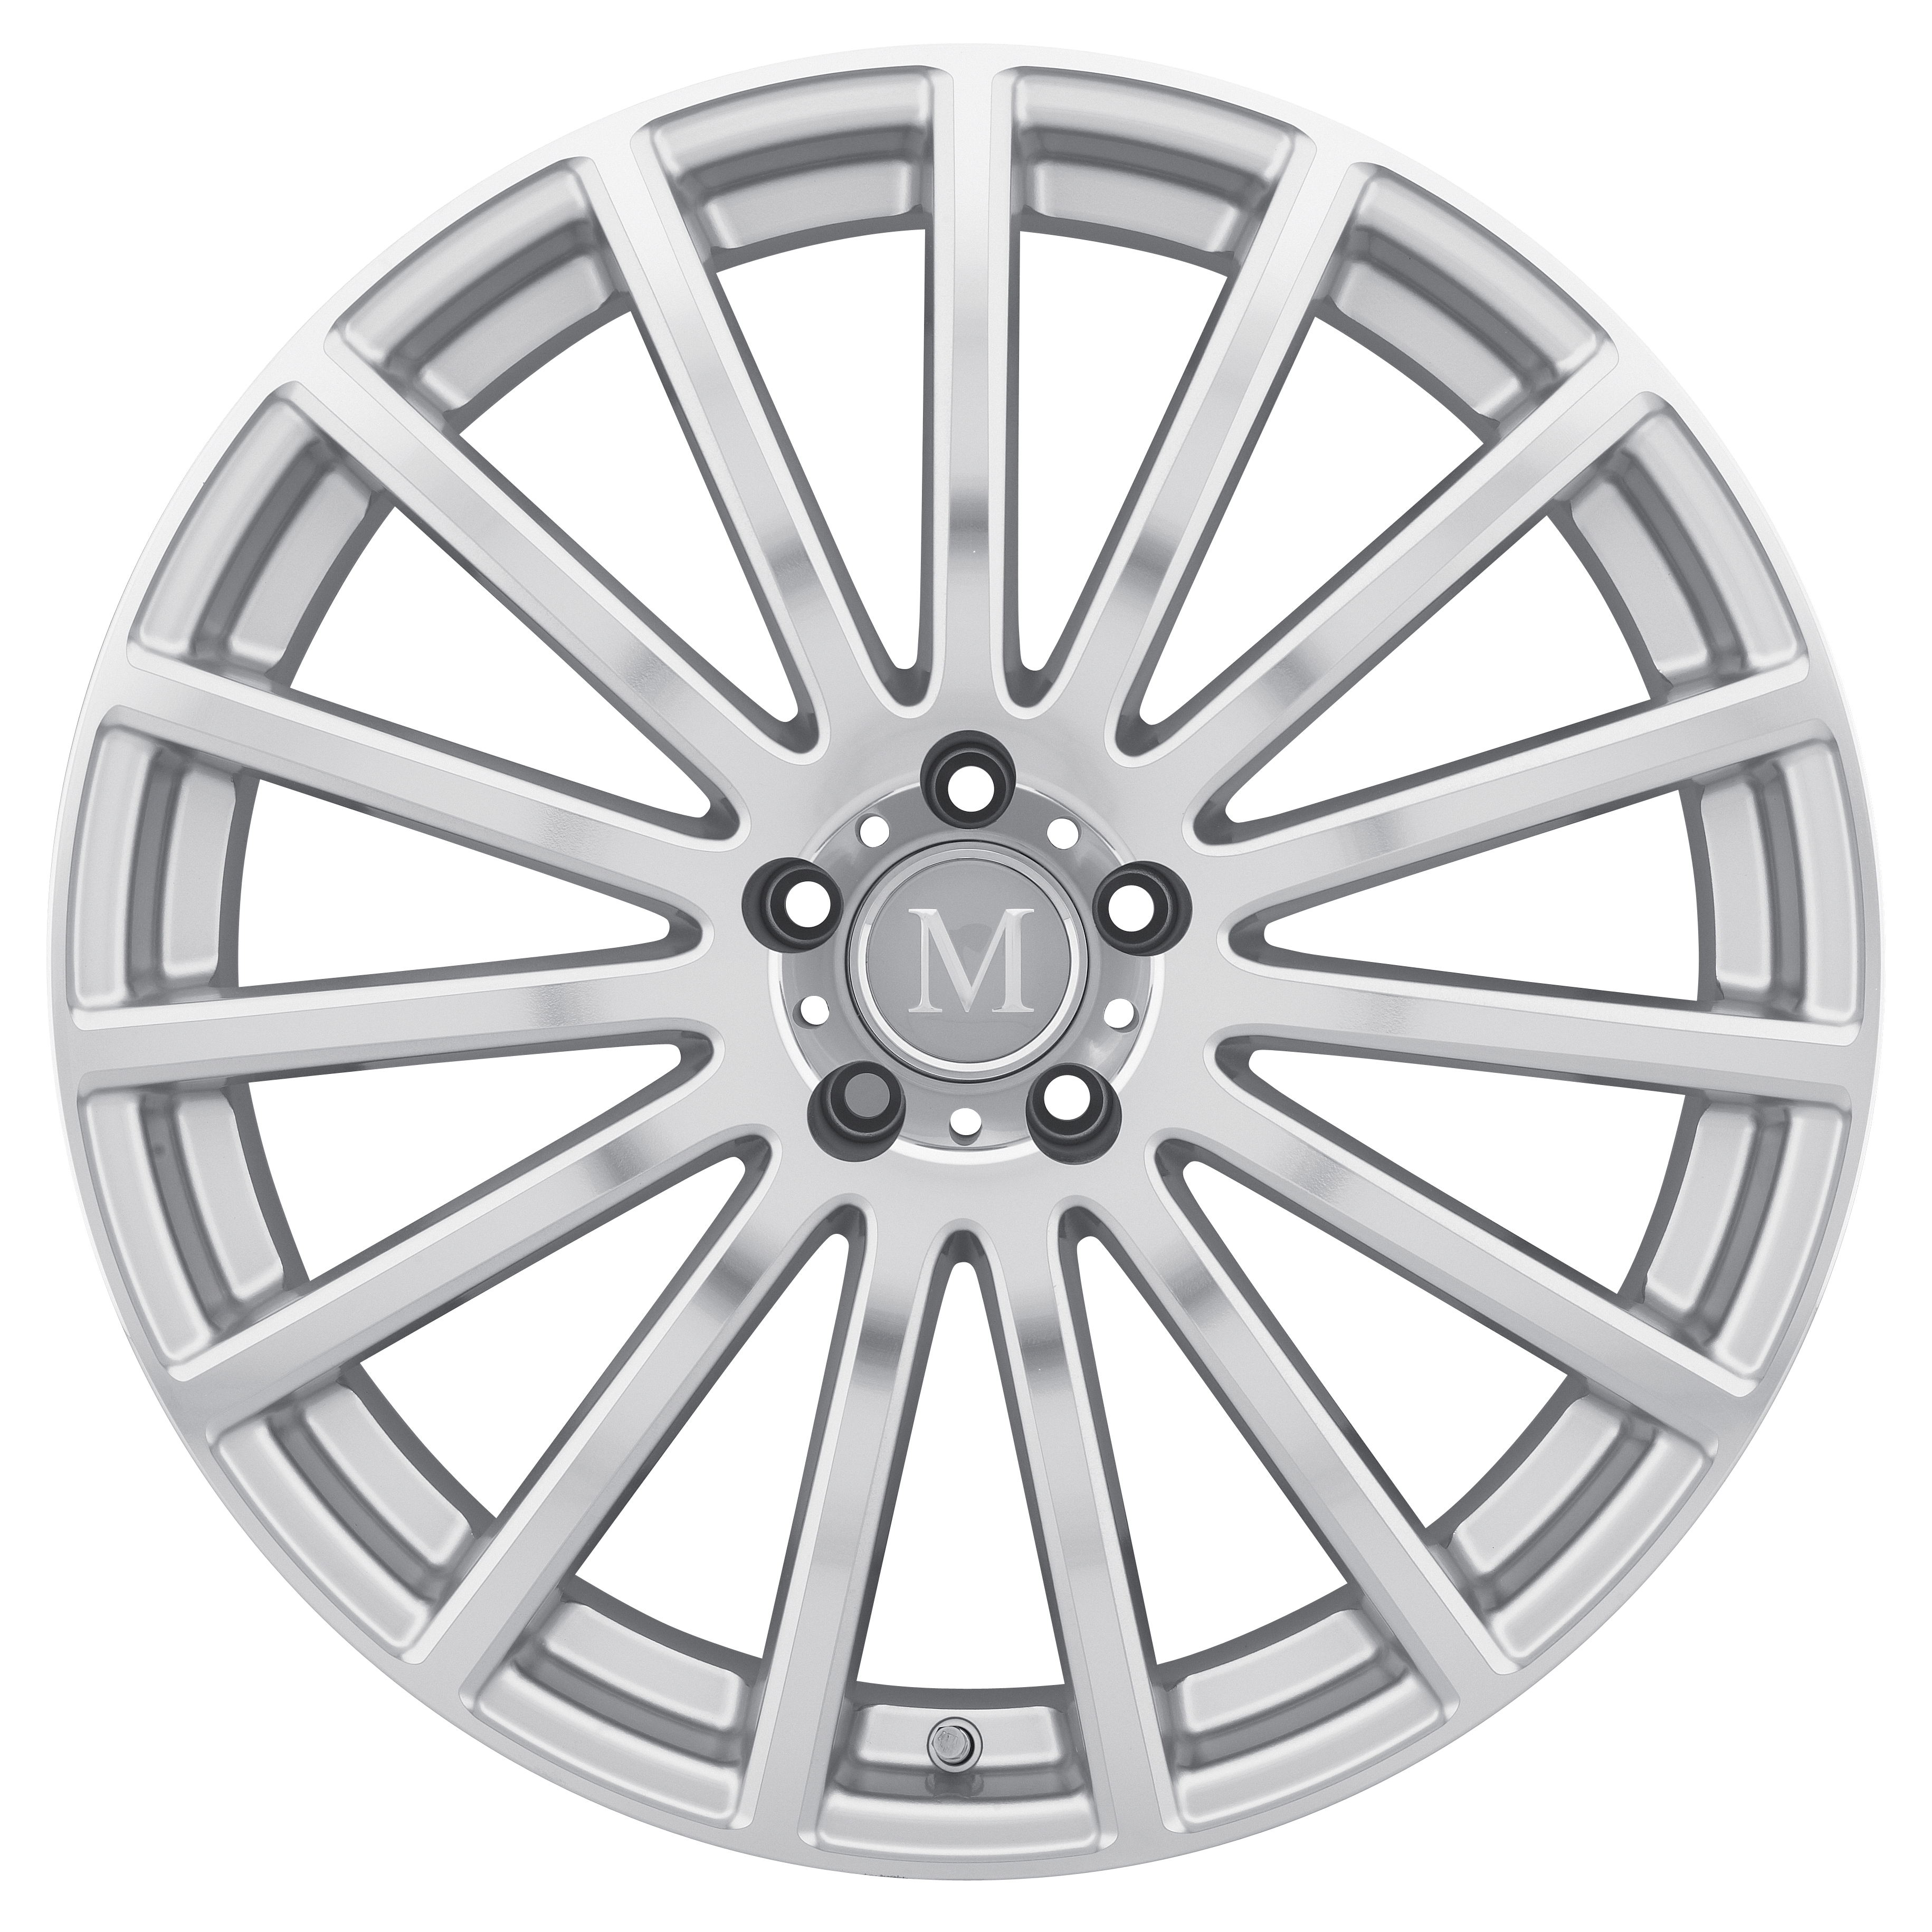 Rotec mercedes benz wheels by mandrus for Mercedes benz lug pattern